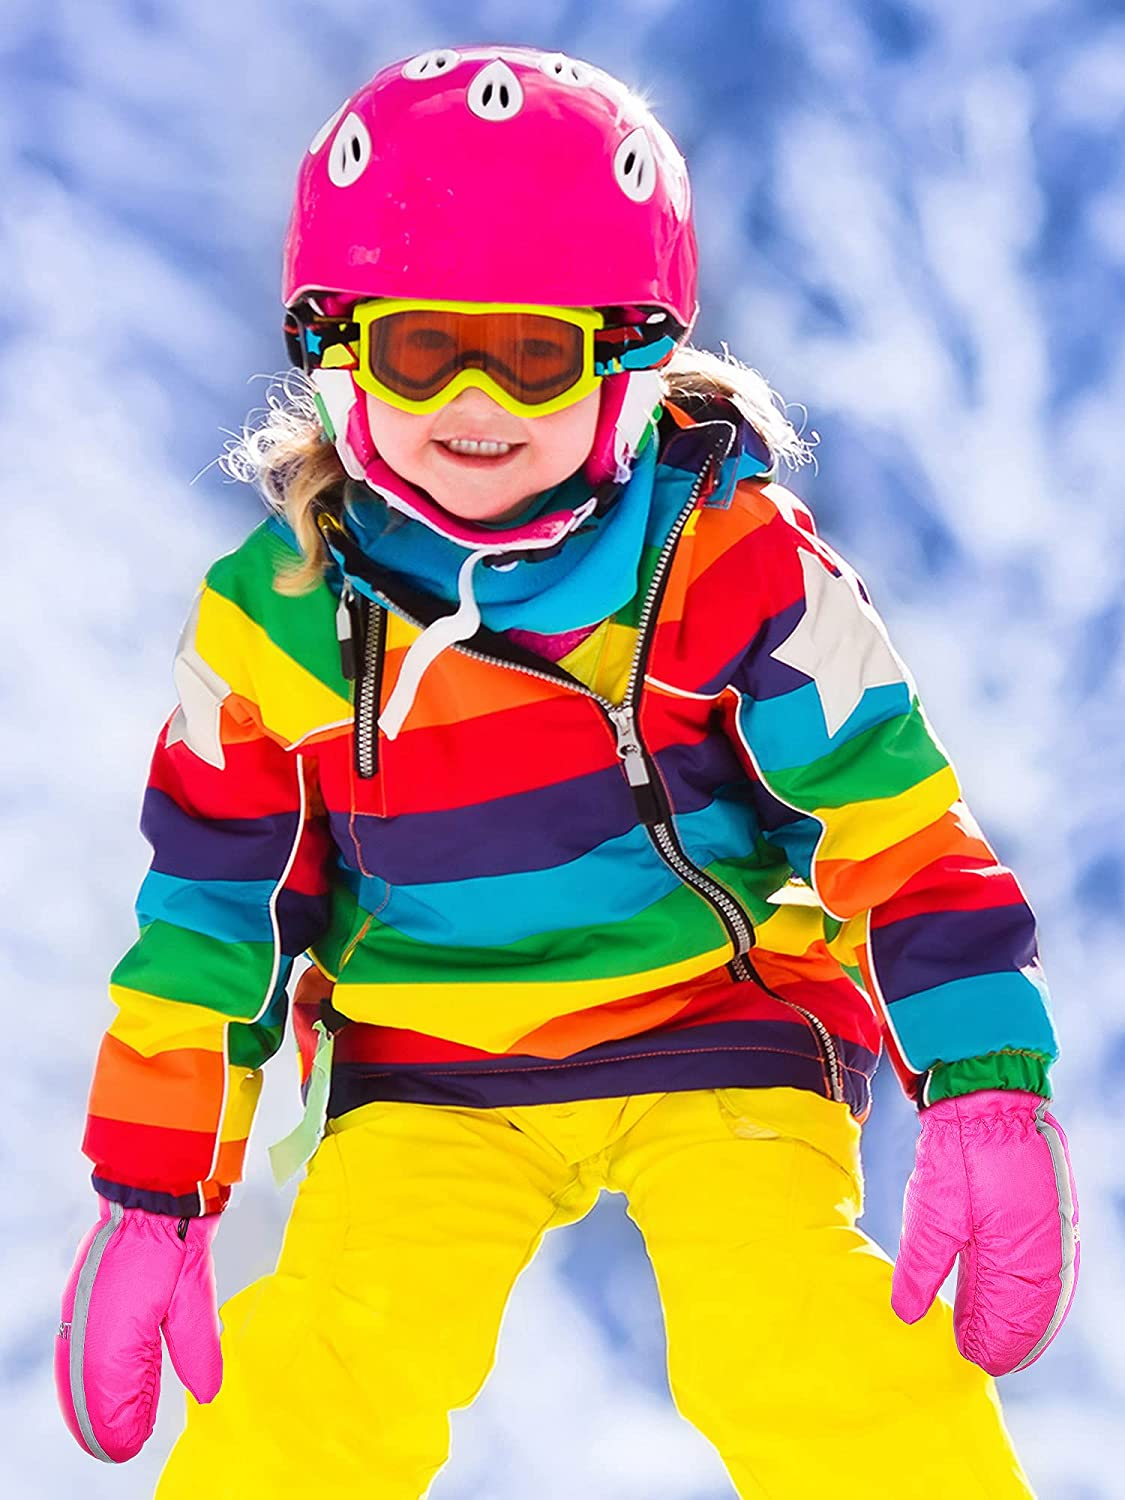 4 Pairs Kids Winter Ski Gloves Reflector Tape Mittens Waterproof Warm Snow Gloves Toddler Mittens Unisex Gloves for Outdoor Activities (Vivid Color,3-5 Years Old)